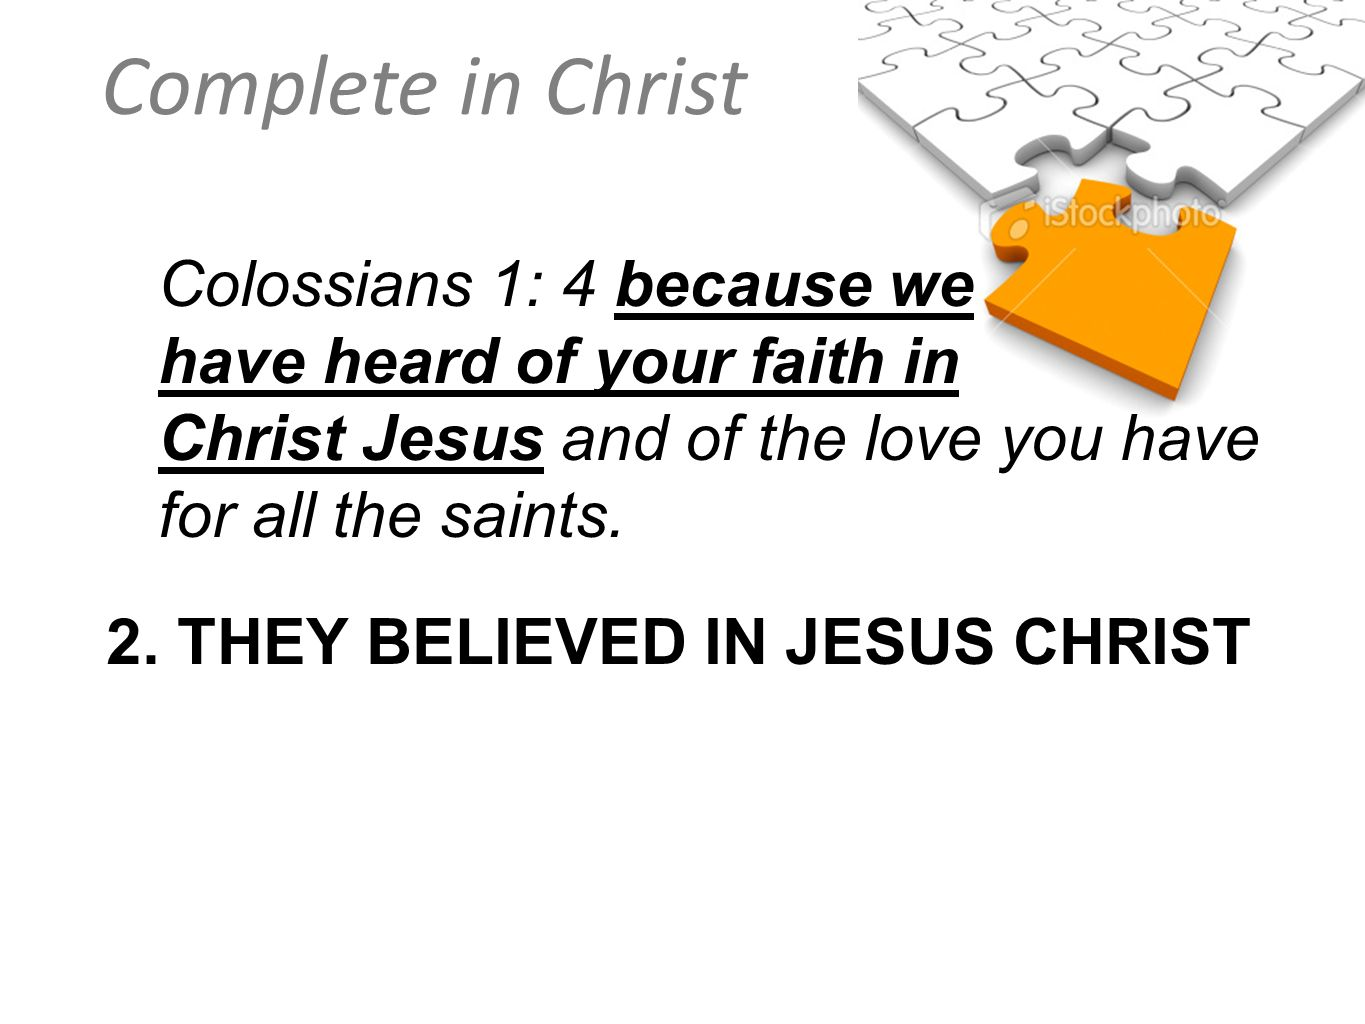 2. THEY BELIEVED IN JESUS CHRIST